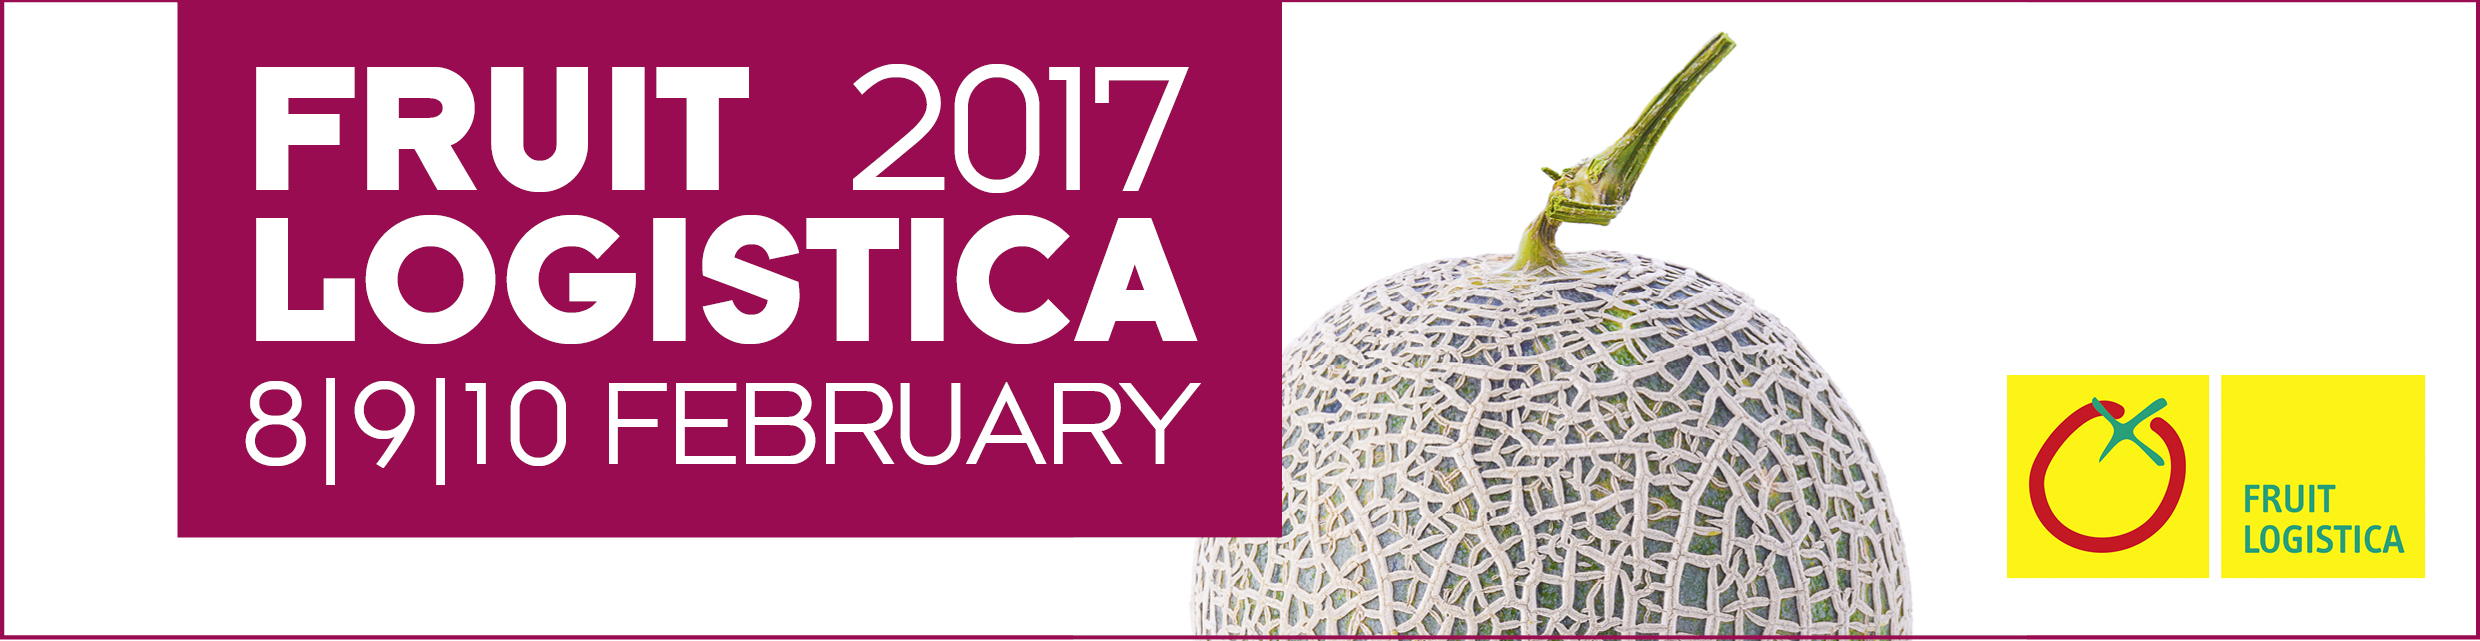 FruitLogistica_Berlino2017A